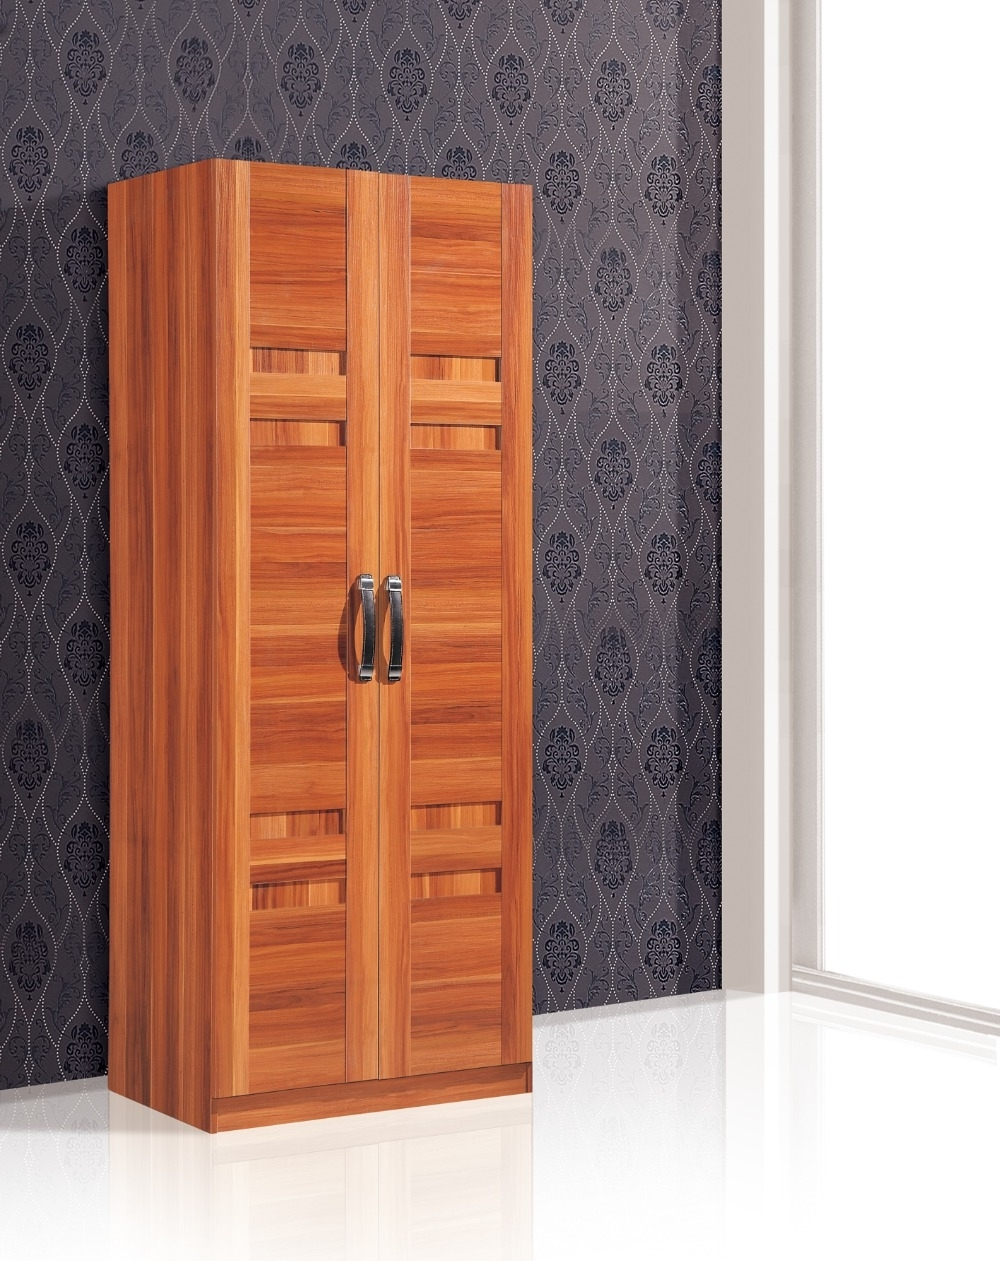 Large Wooden Wardrobes Regarding Most Up To Date Bedroom Furniture Simple Wardrobe Large Reinforce Wooden Cloth (View 4 of 15)